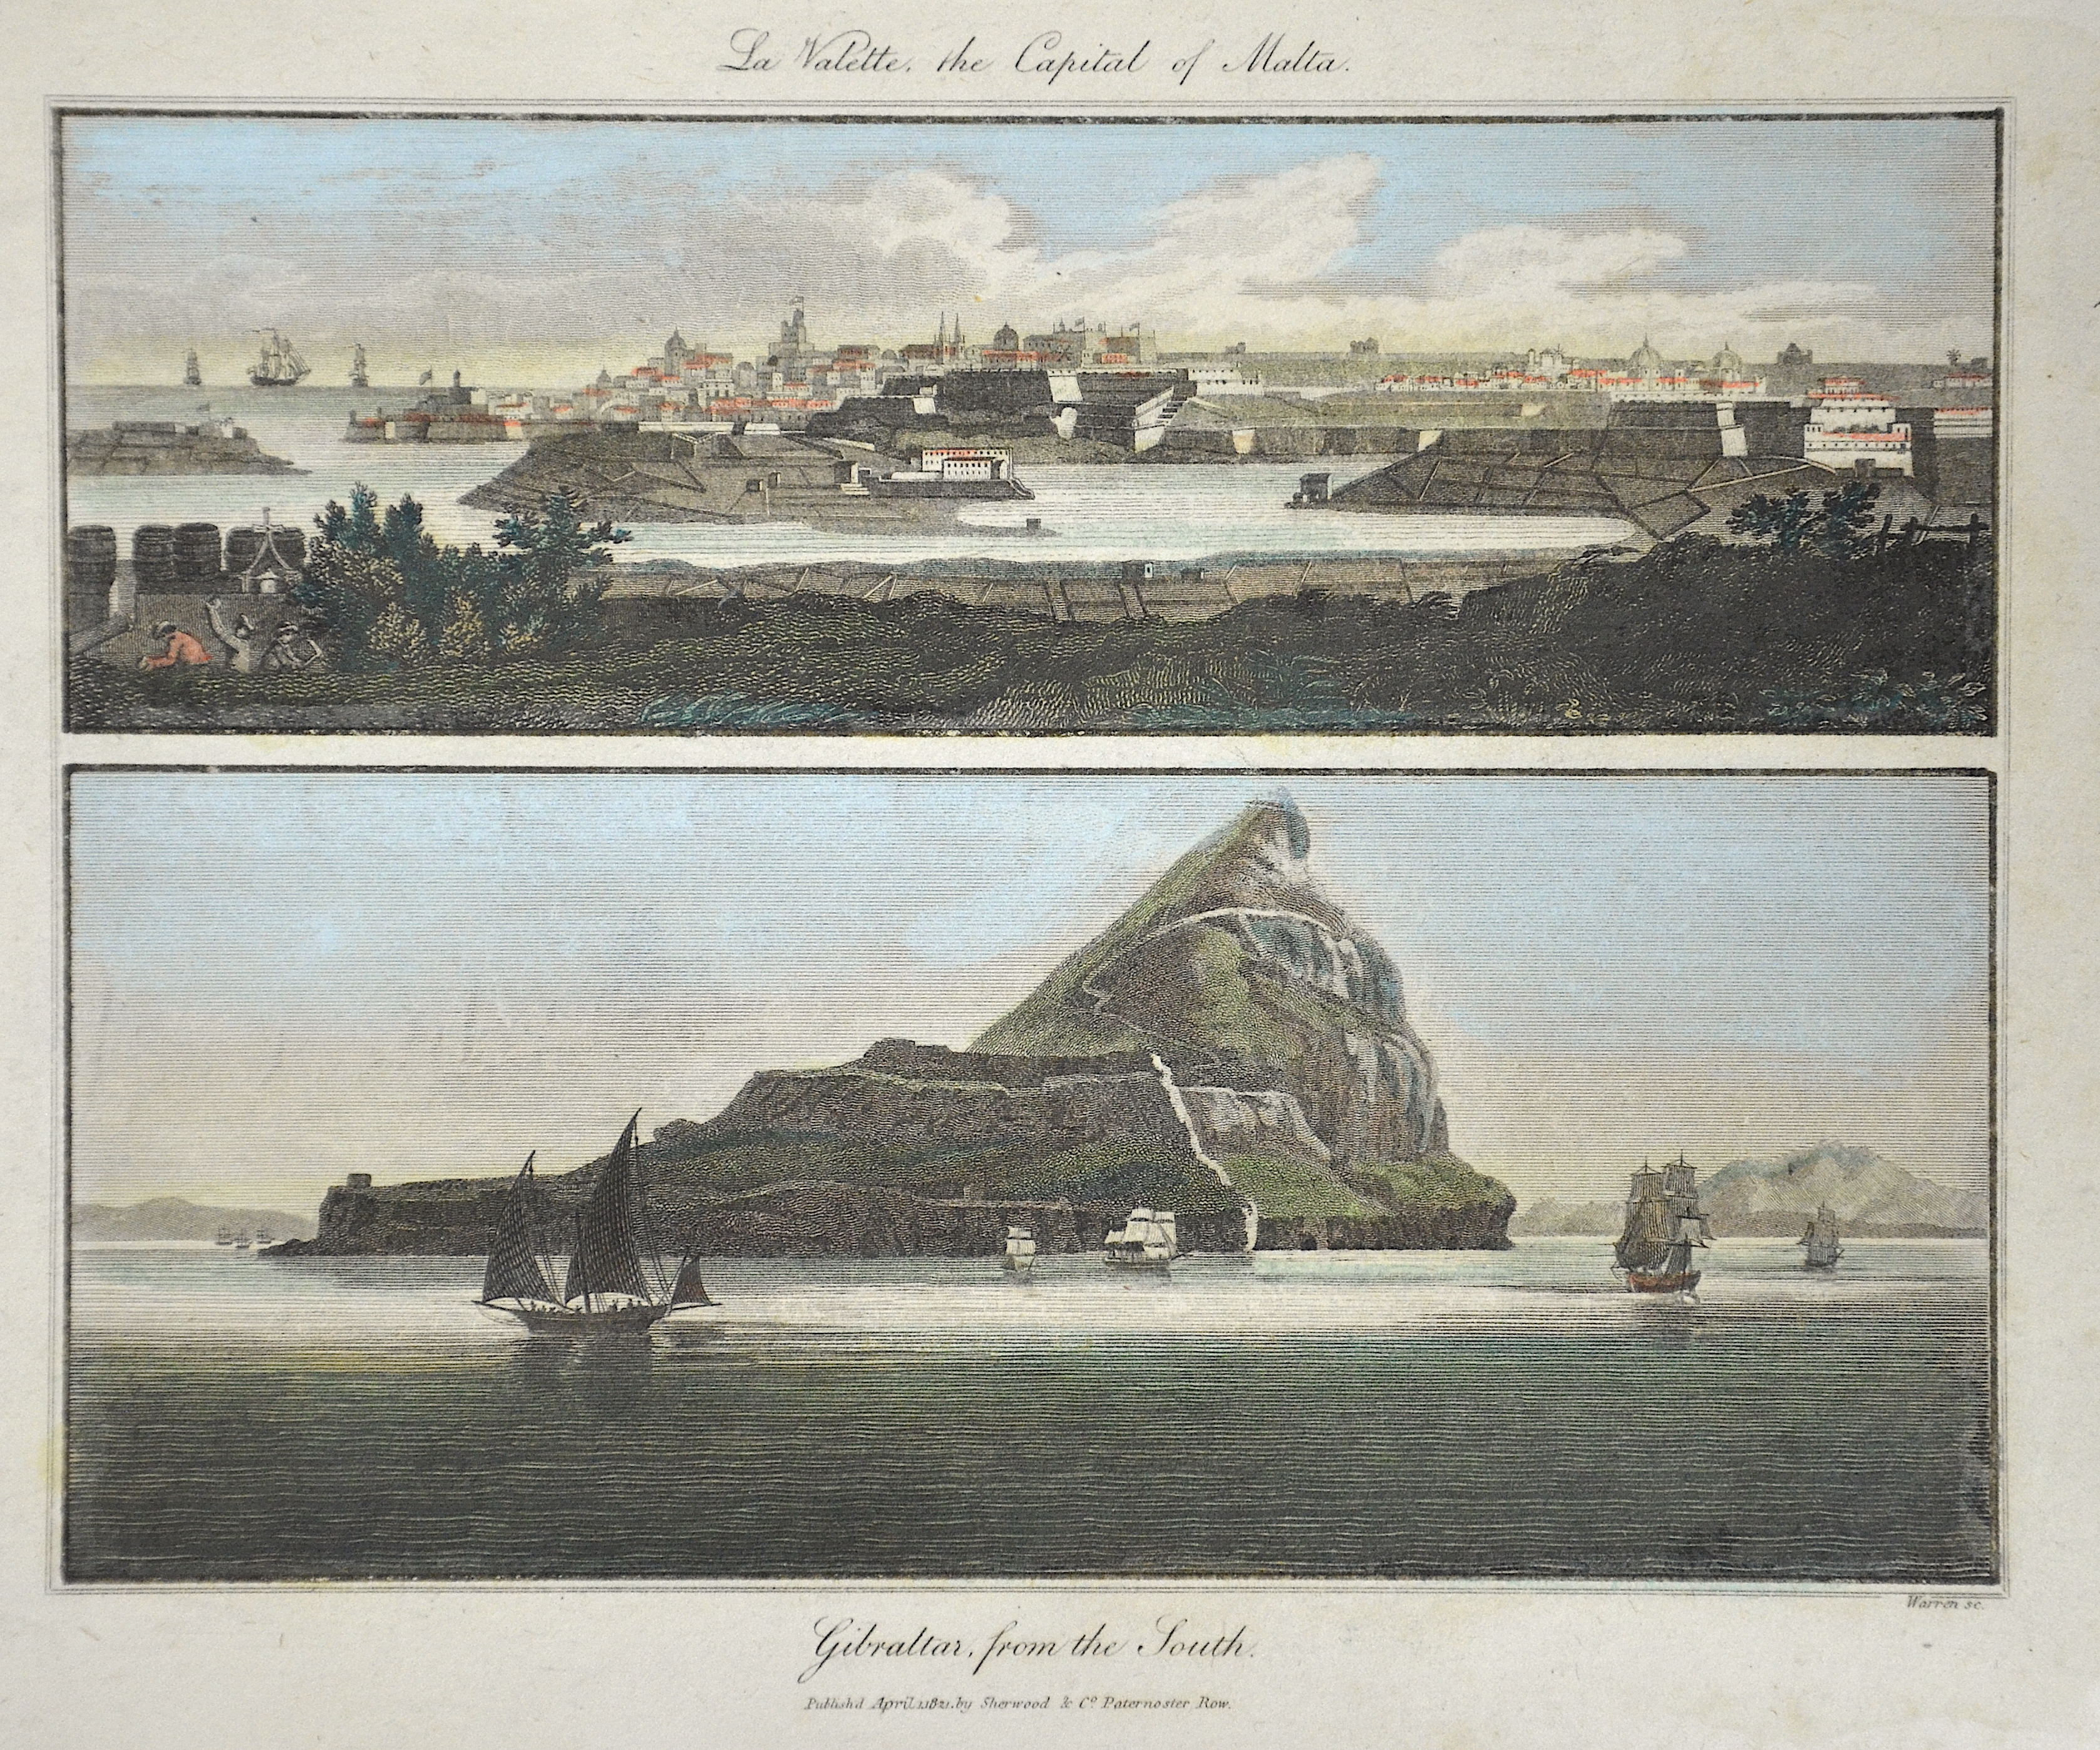 Sherwood/Neely & Jones  La Valette, the Capital of Malta. / Gibraltar, from the South.